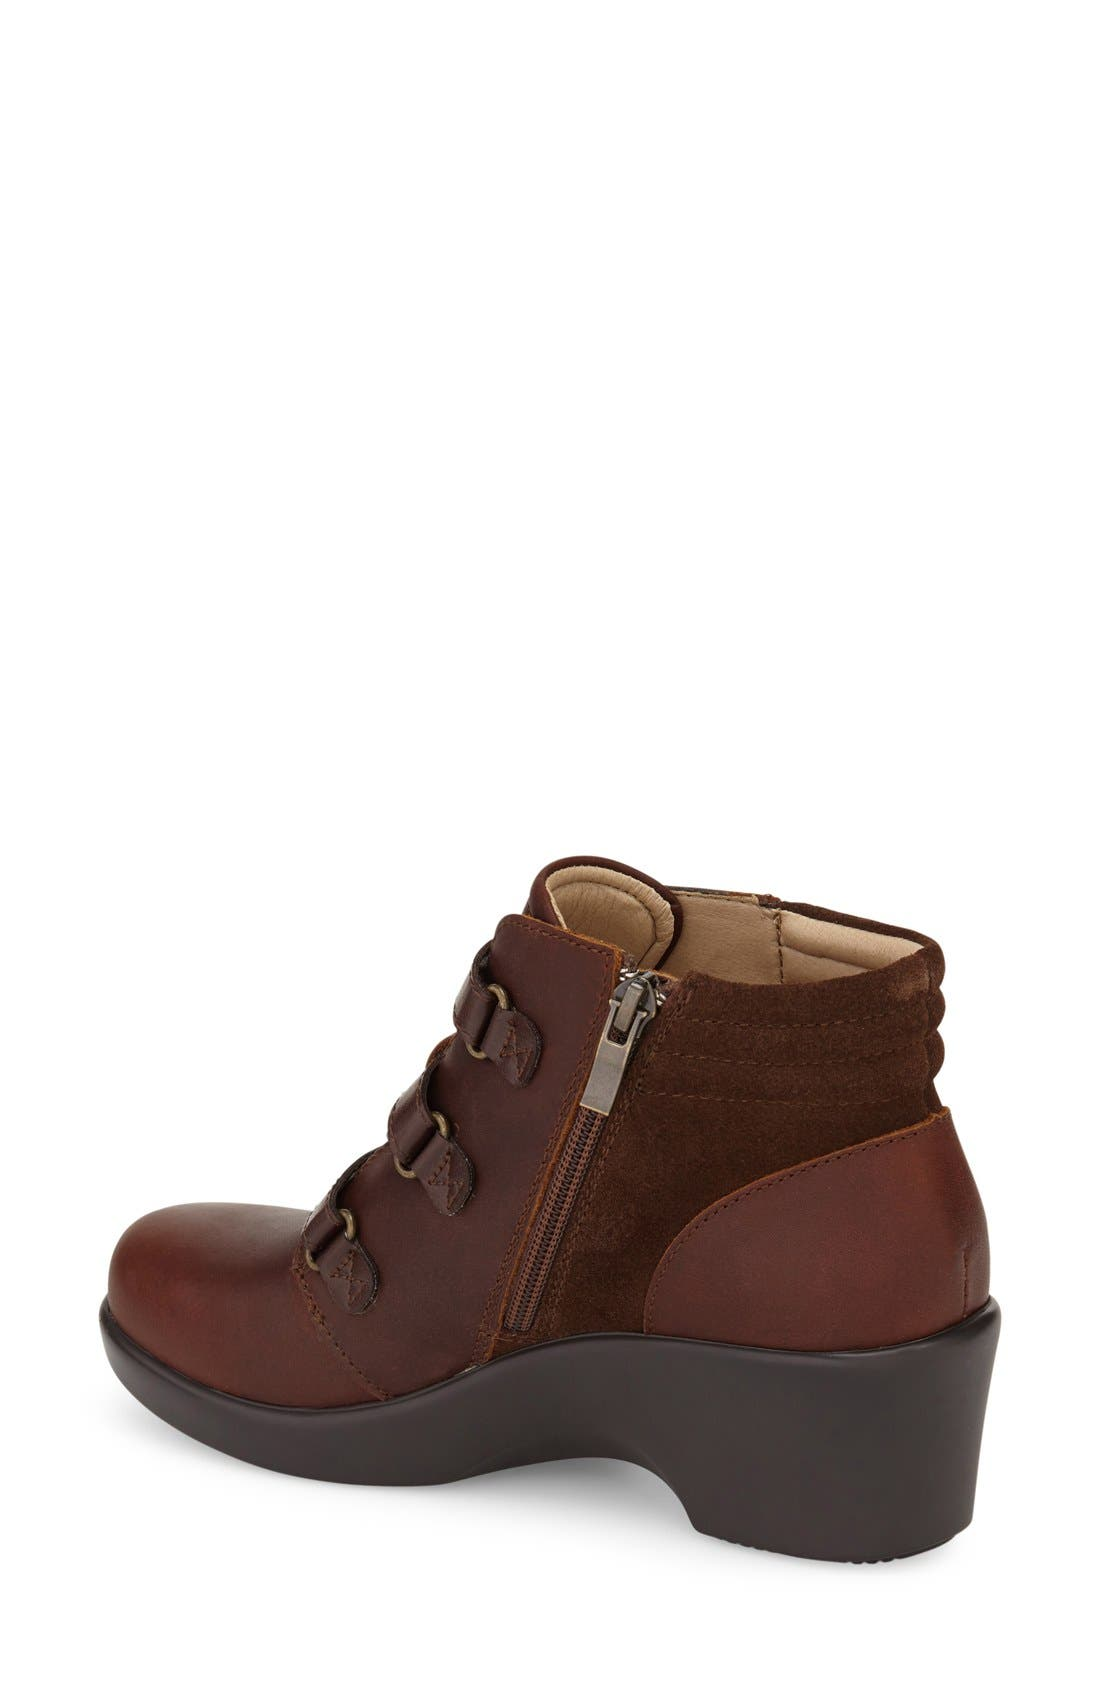 Indi Demi Wedge Bootie,                             Alternate thumbnail 13, color,